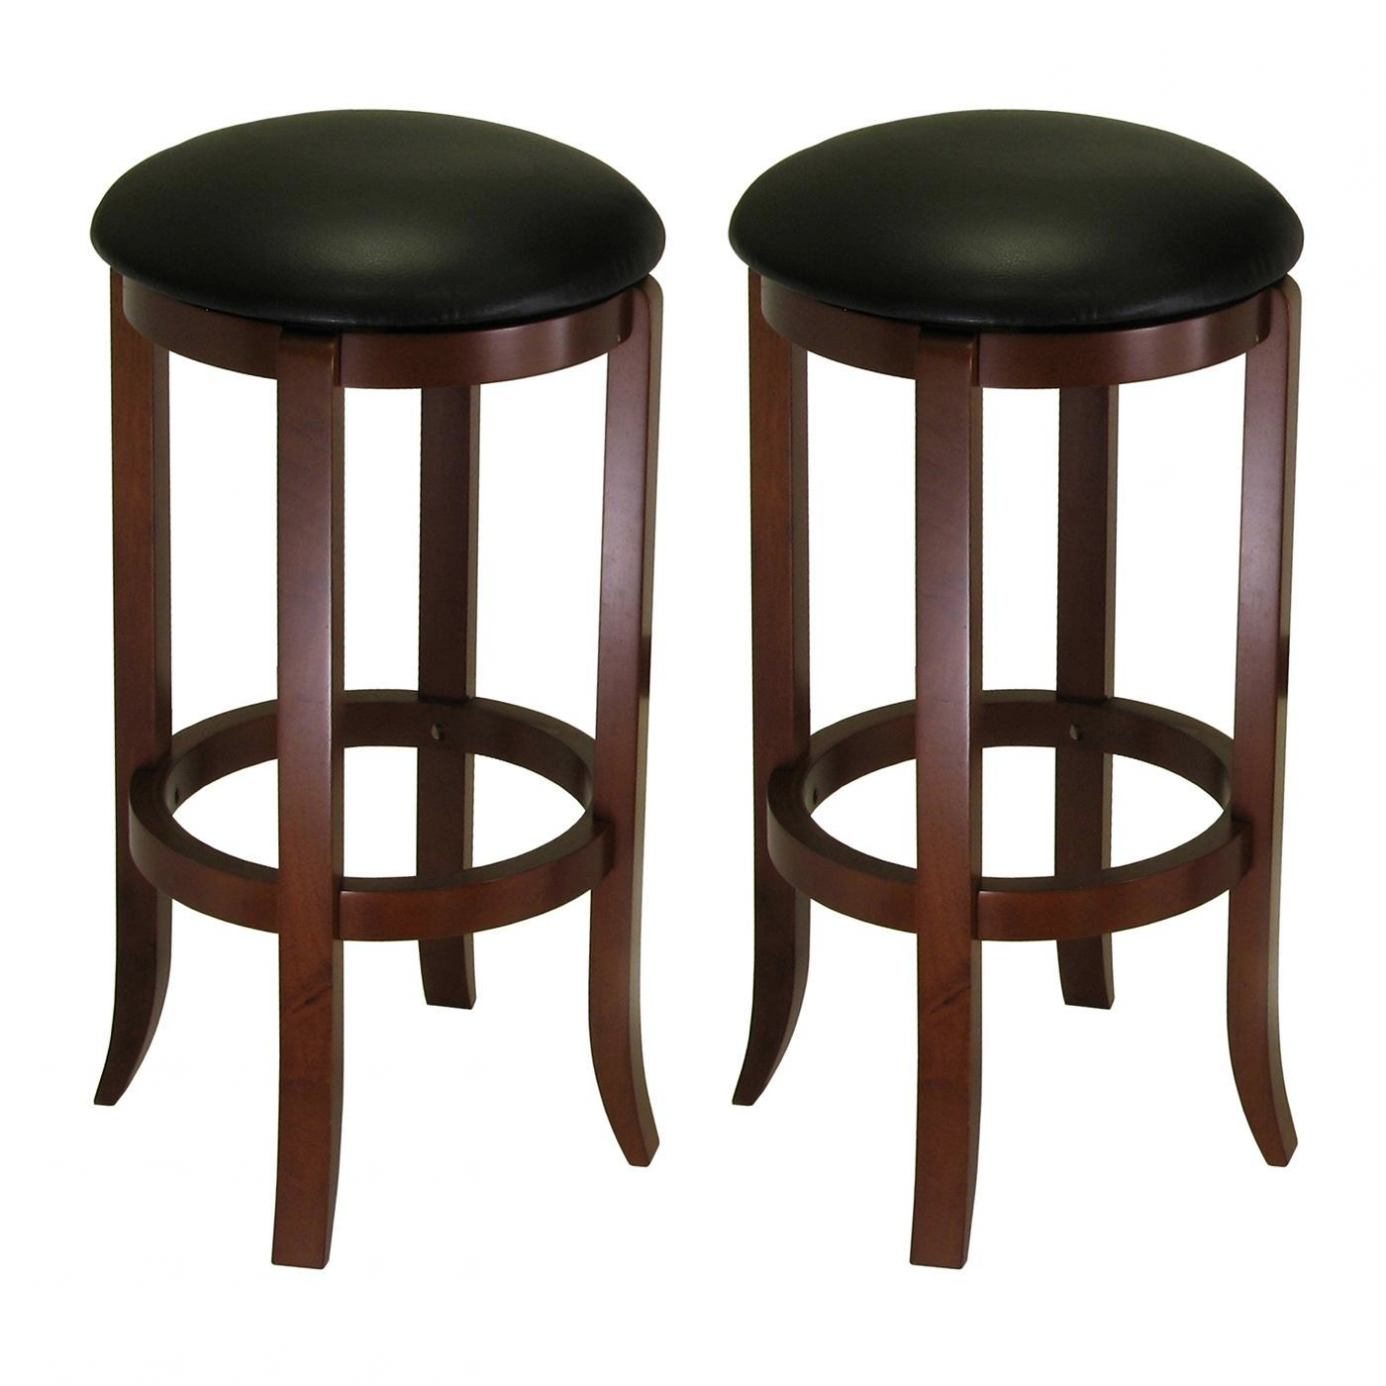 winsome wood whitenatural bar stool concrete that looks like inch stools black pvc seat walnut set accent table target patio small contemporary farmhouse with leaf waterproof